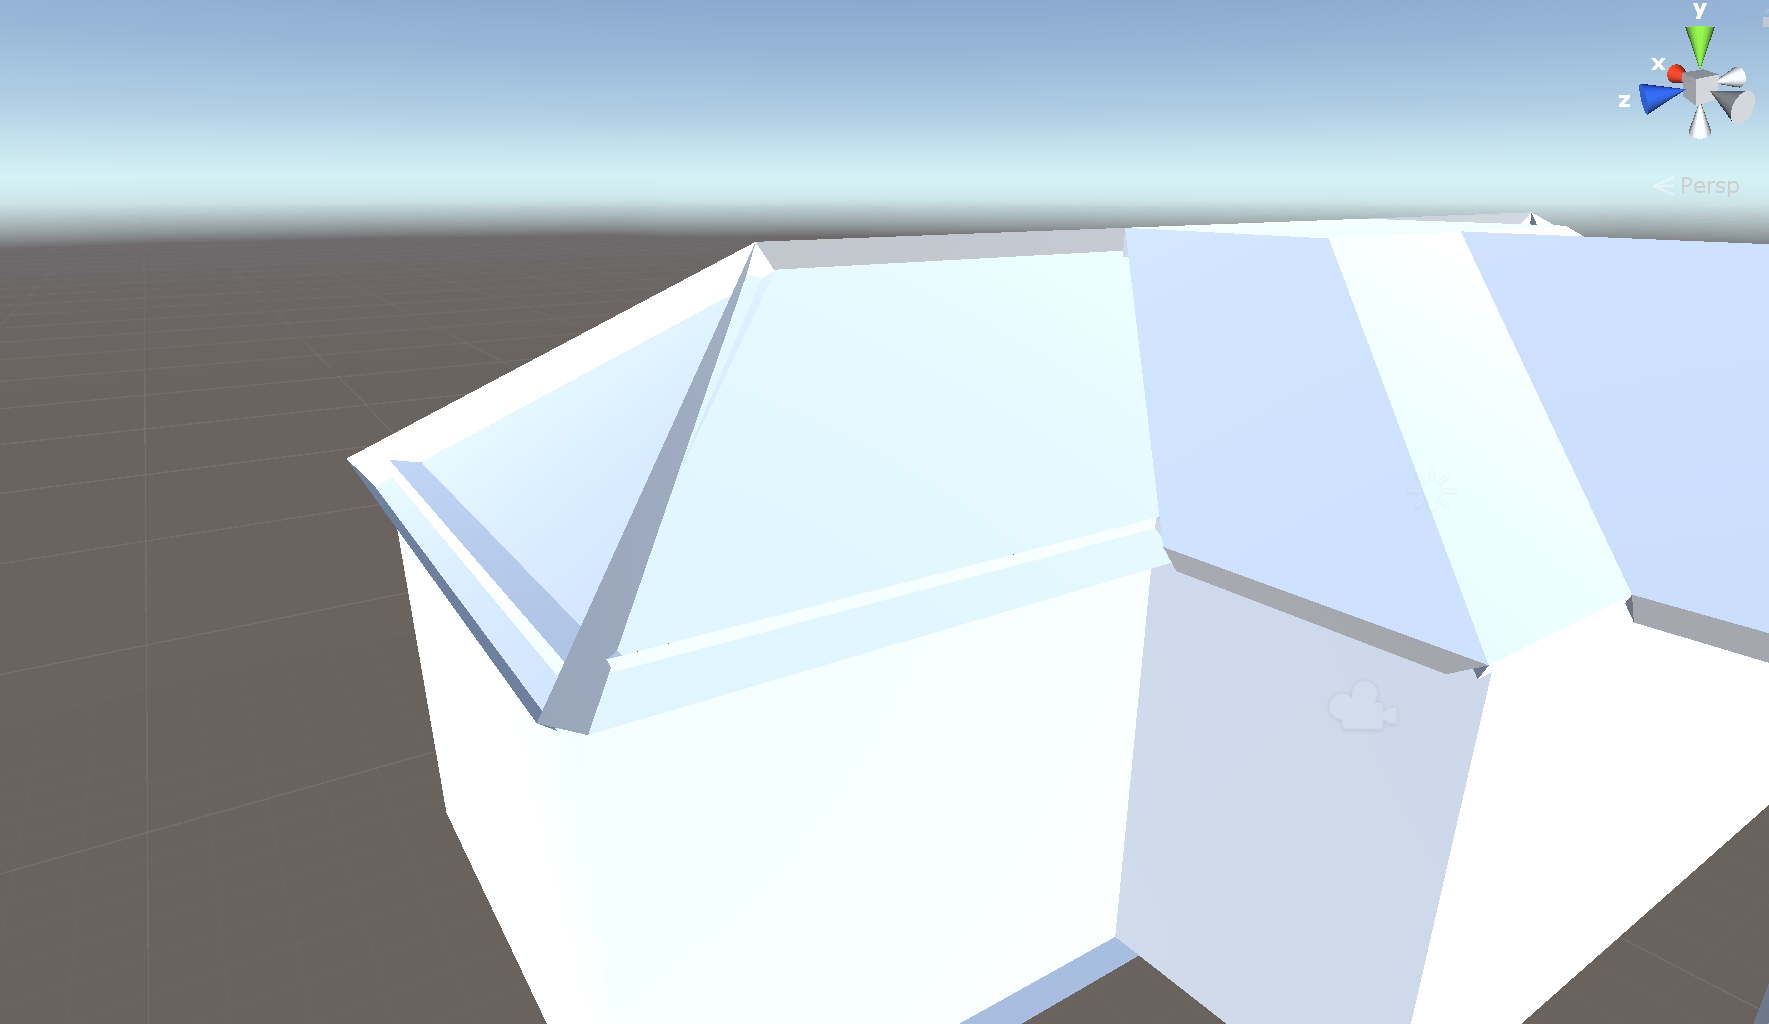 Roof outer face is missing in Unity